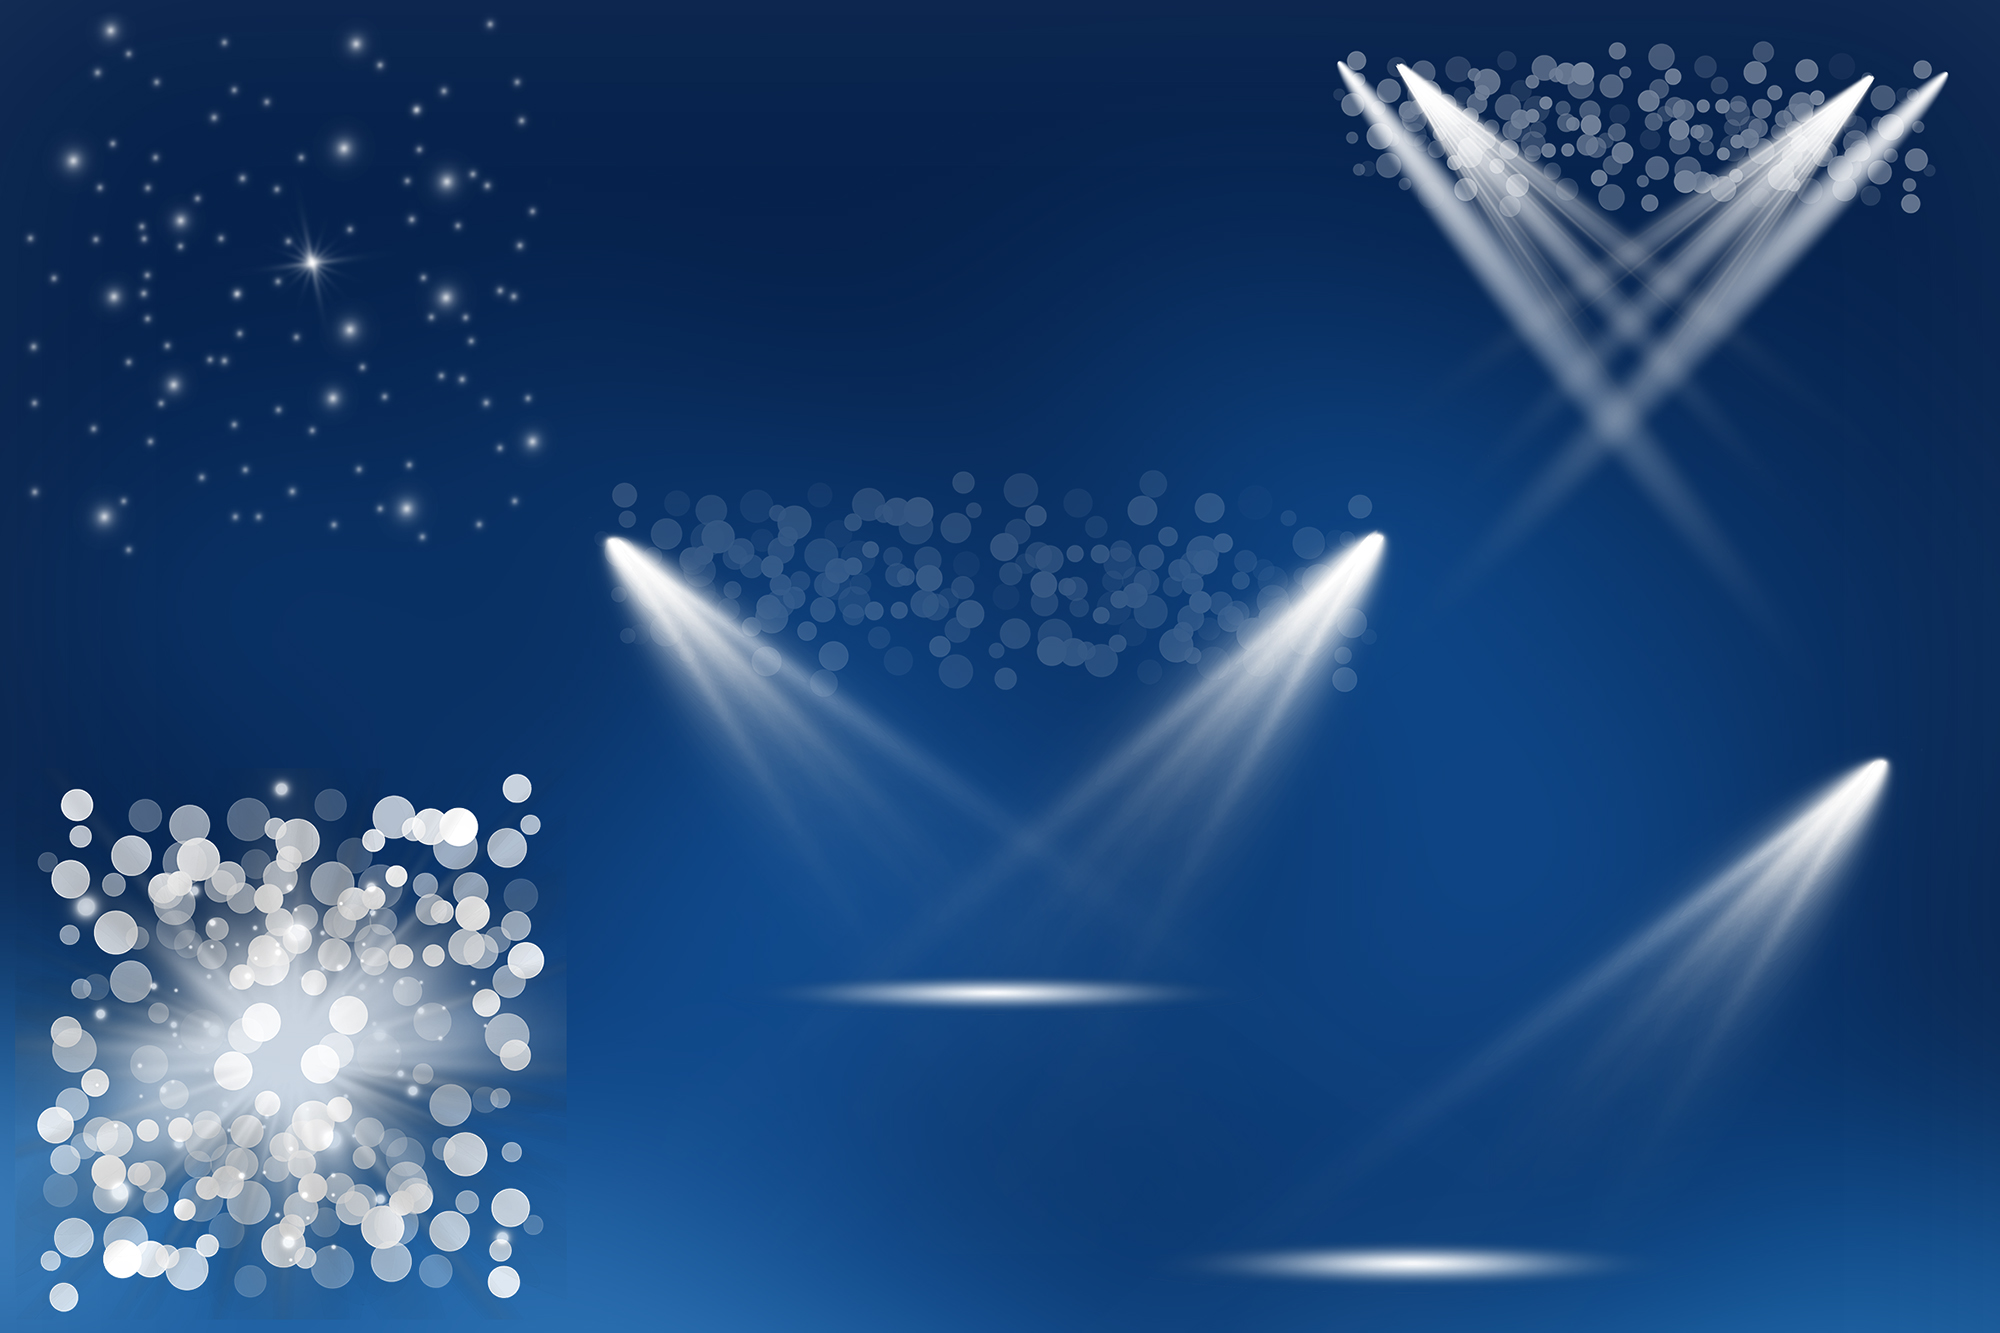 Stage Lighting Overlays, Spotlight Effects example image 3